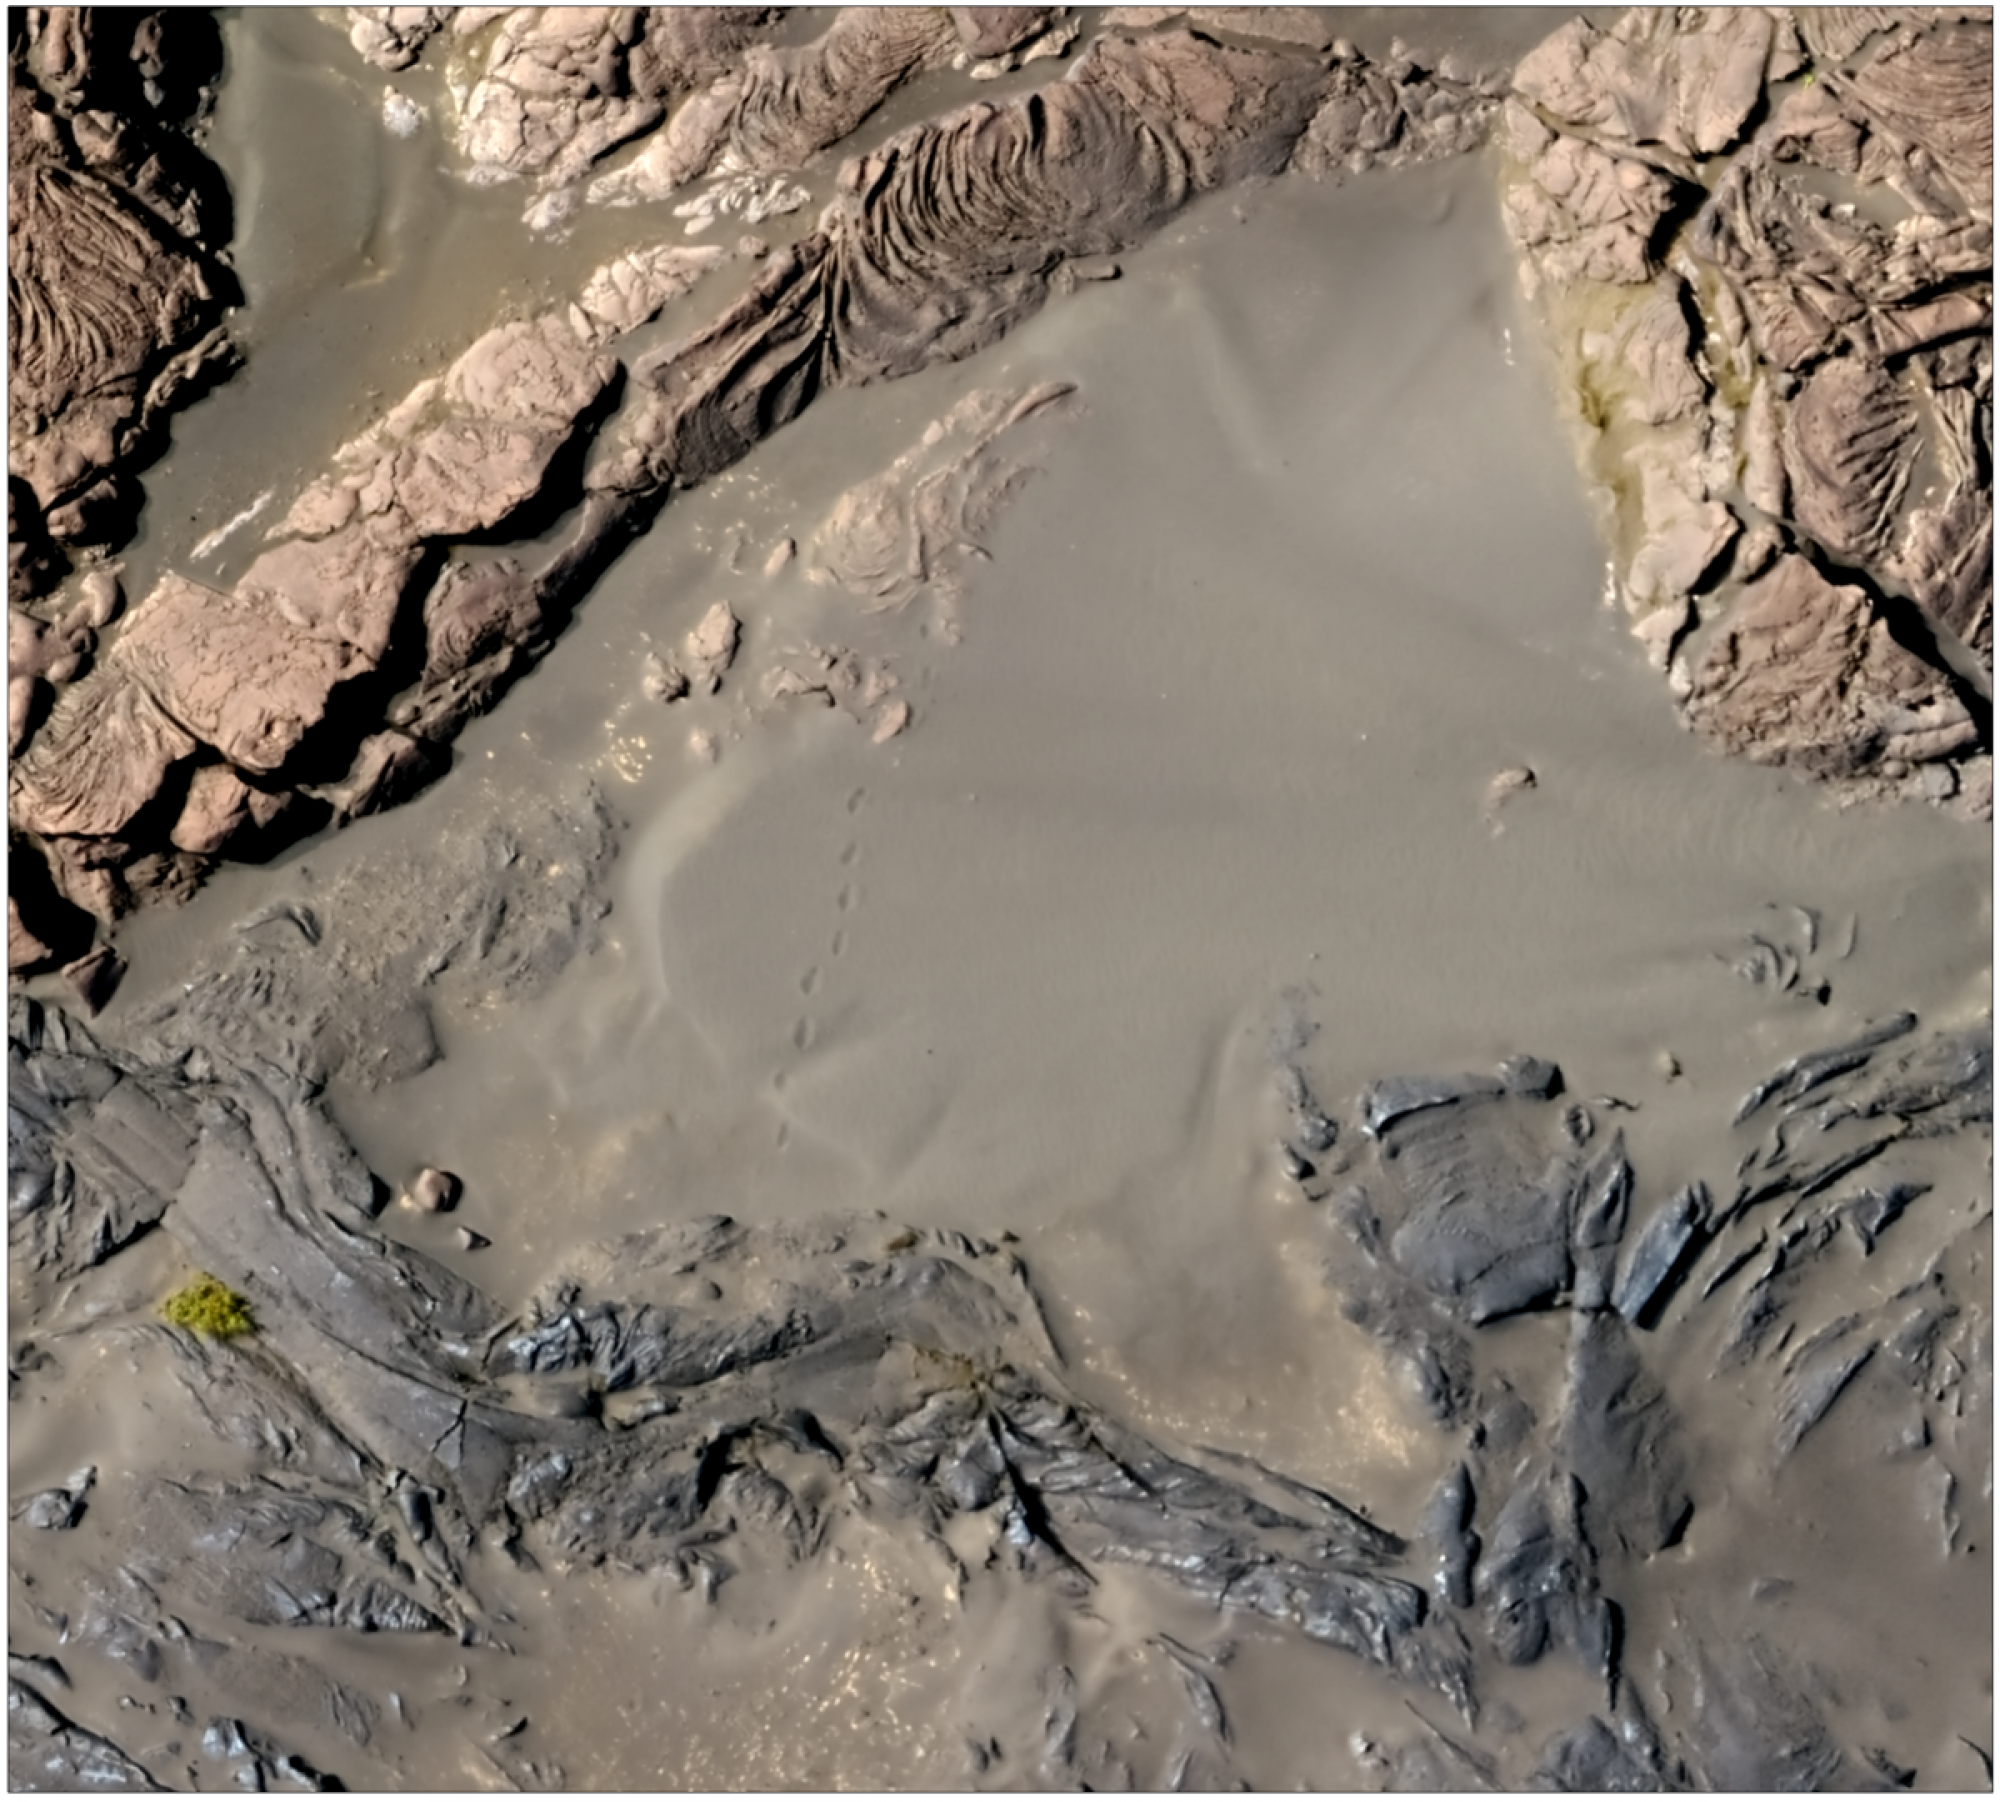 A high-resolution orthophoto of the margin of the December 1974 flow. If you look carefully, you can see footprints in the sand leading away from the edge of the lava flow.